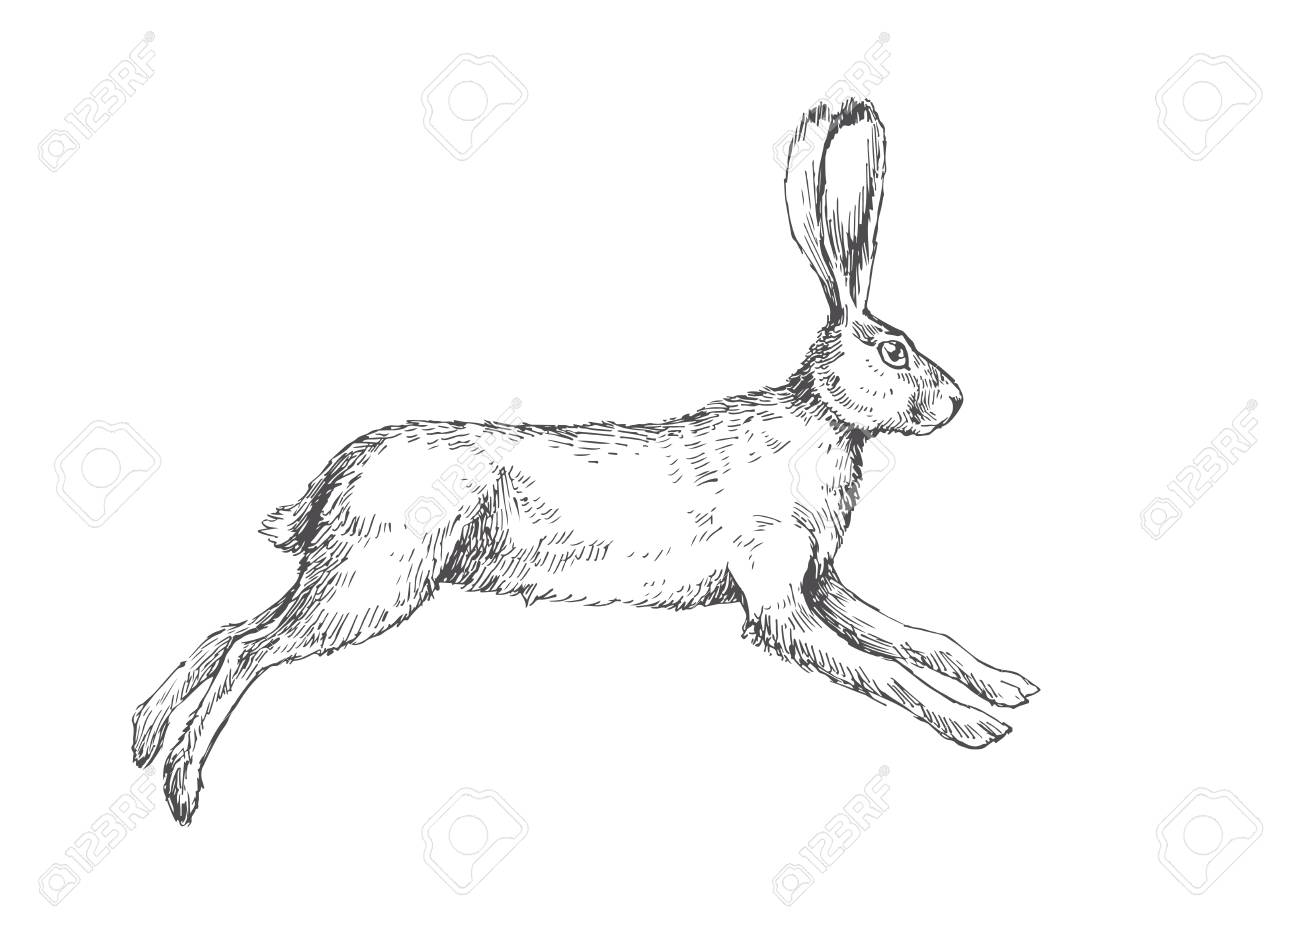 Vector vintage illustration of running hare isolated on white. Hand drawn jumping rabbit in engraving style. - 114935083